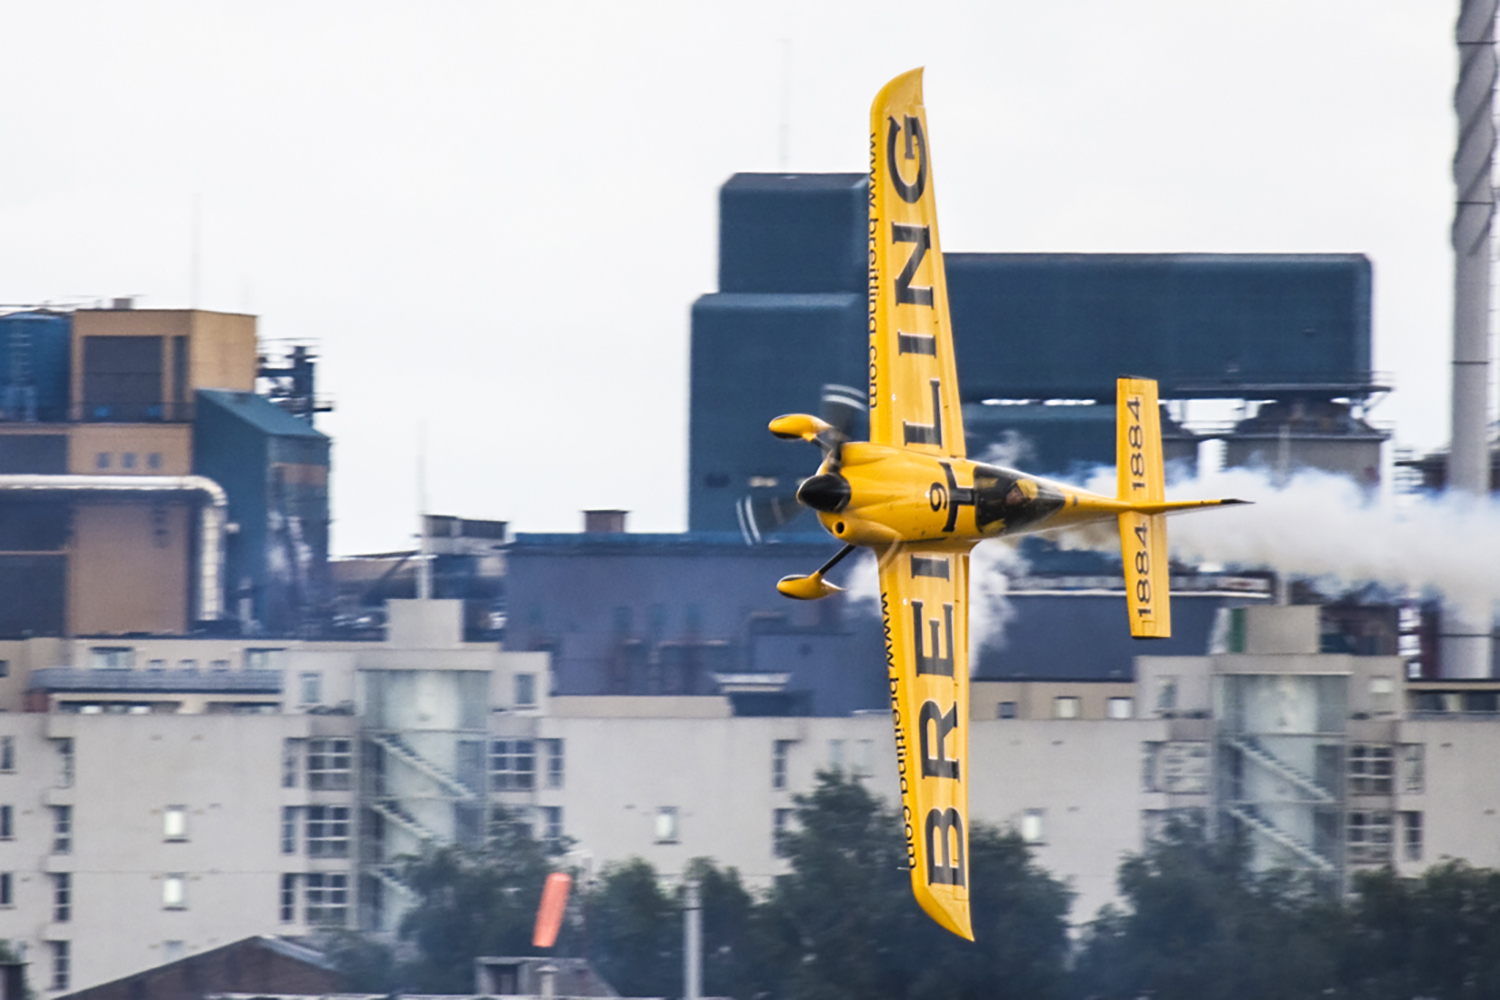 Red Bull Air Race, London.